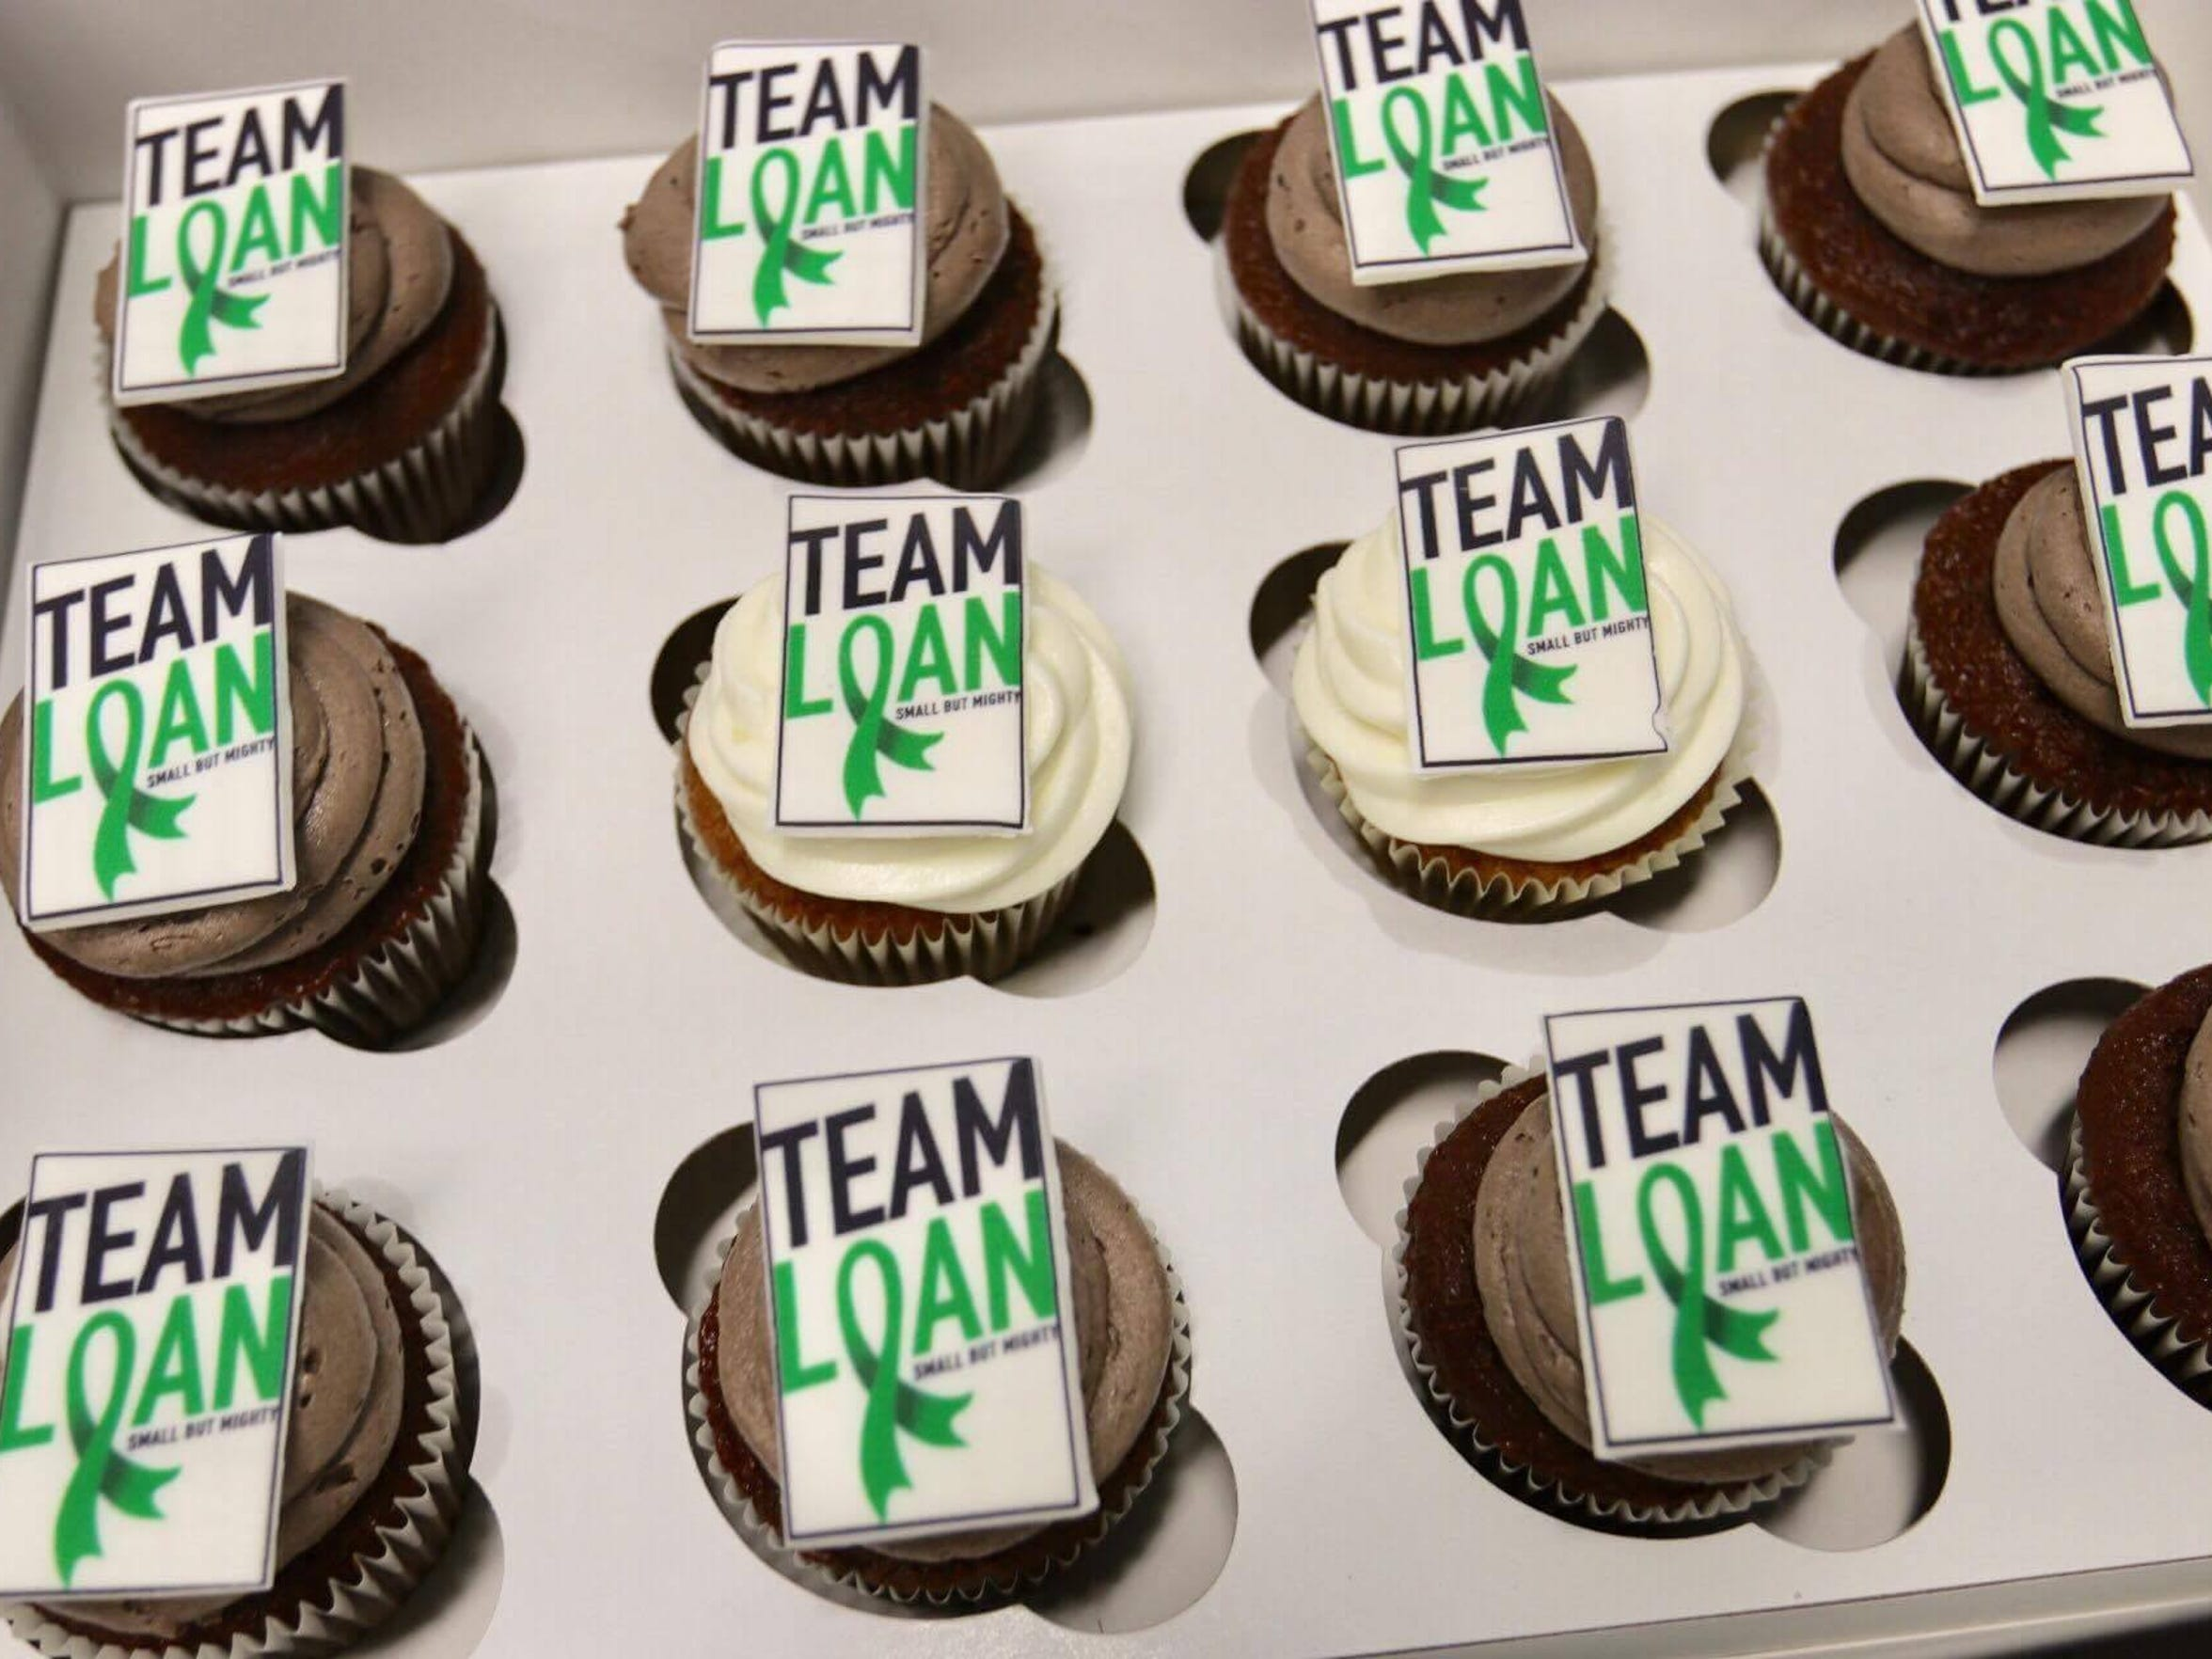 """Team Loan"" has grown tremendously."